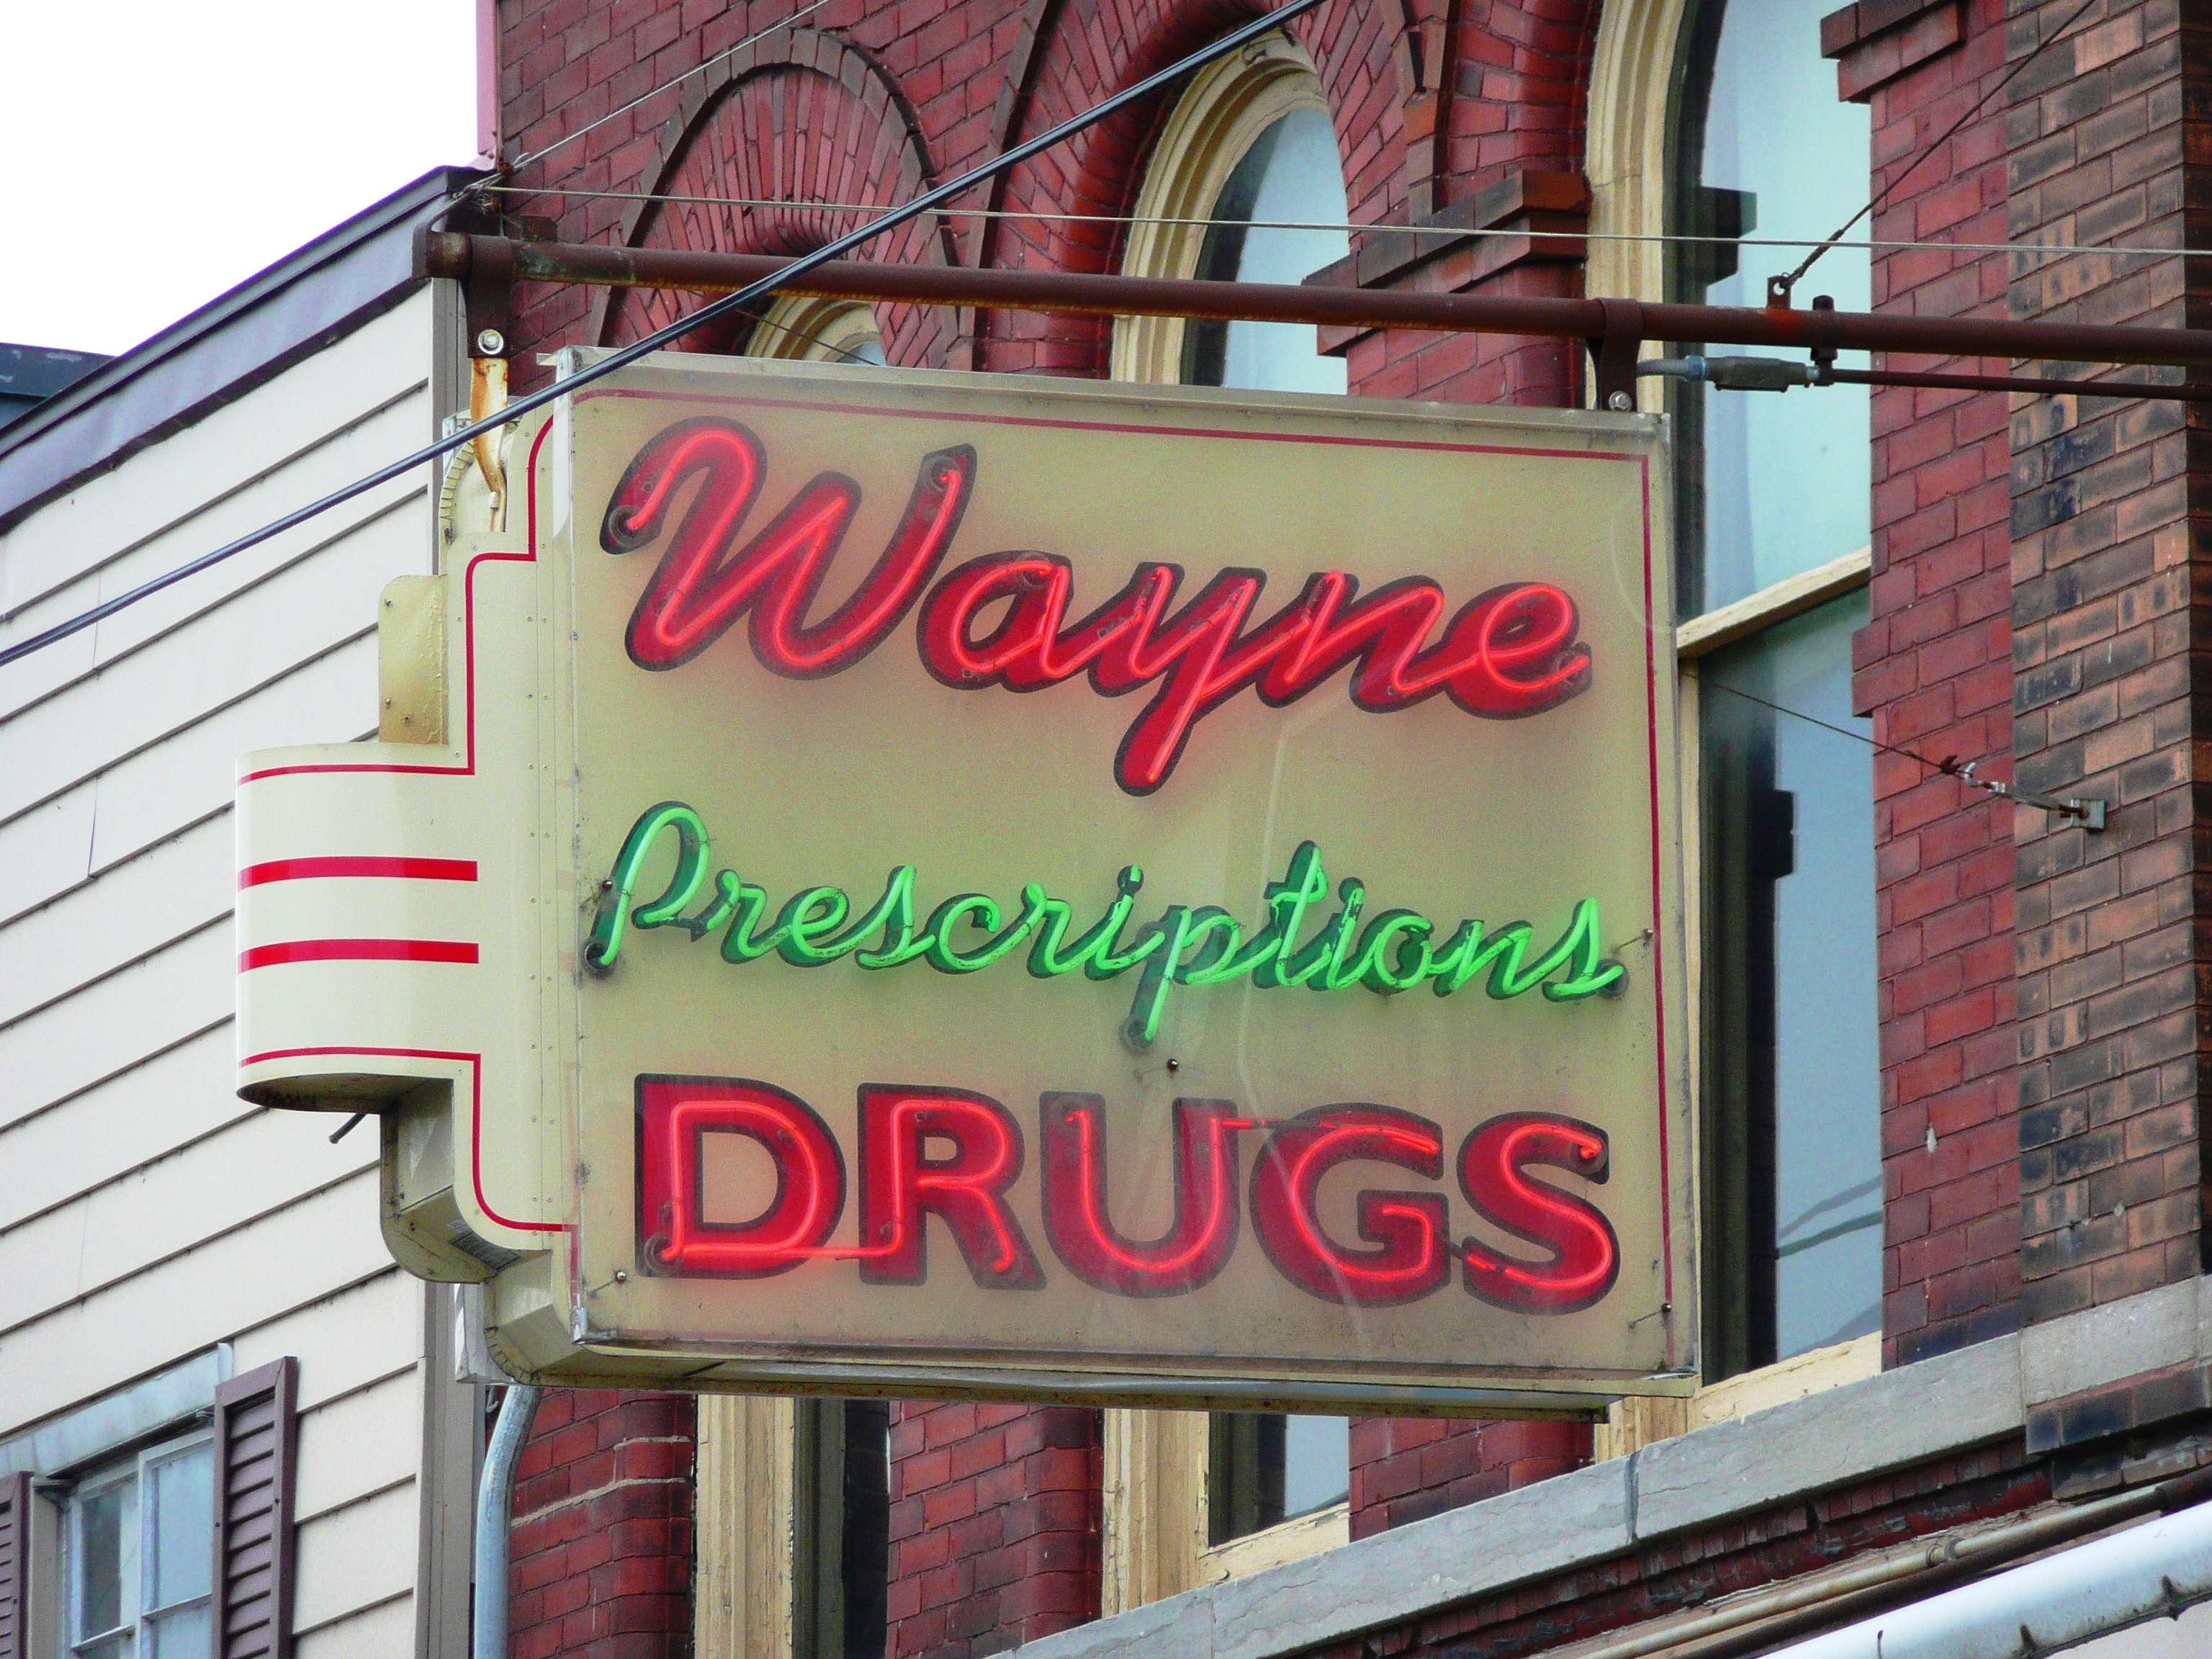 Wayne Drugs - 24 West Bridge Street, Oswego, New York, U.S.A. - July 9, 2010